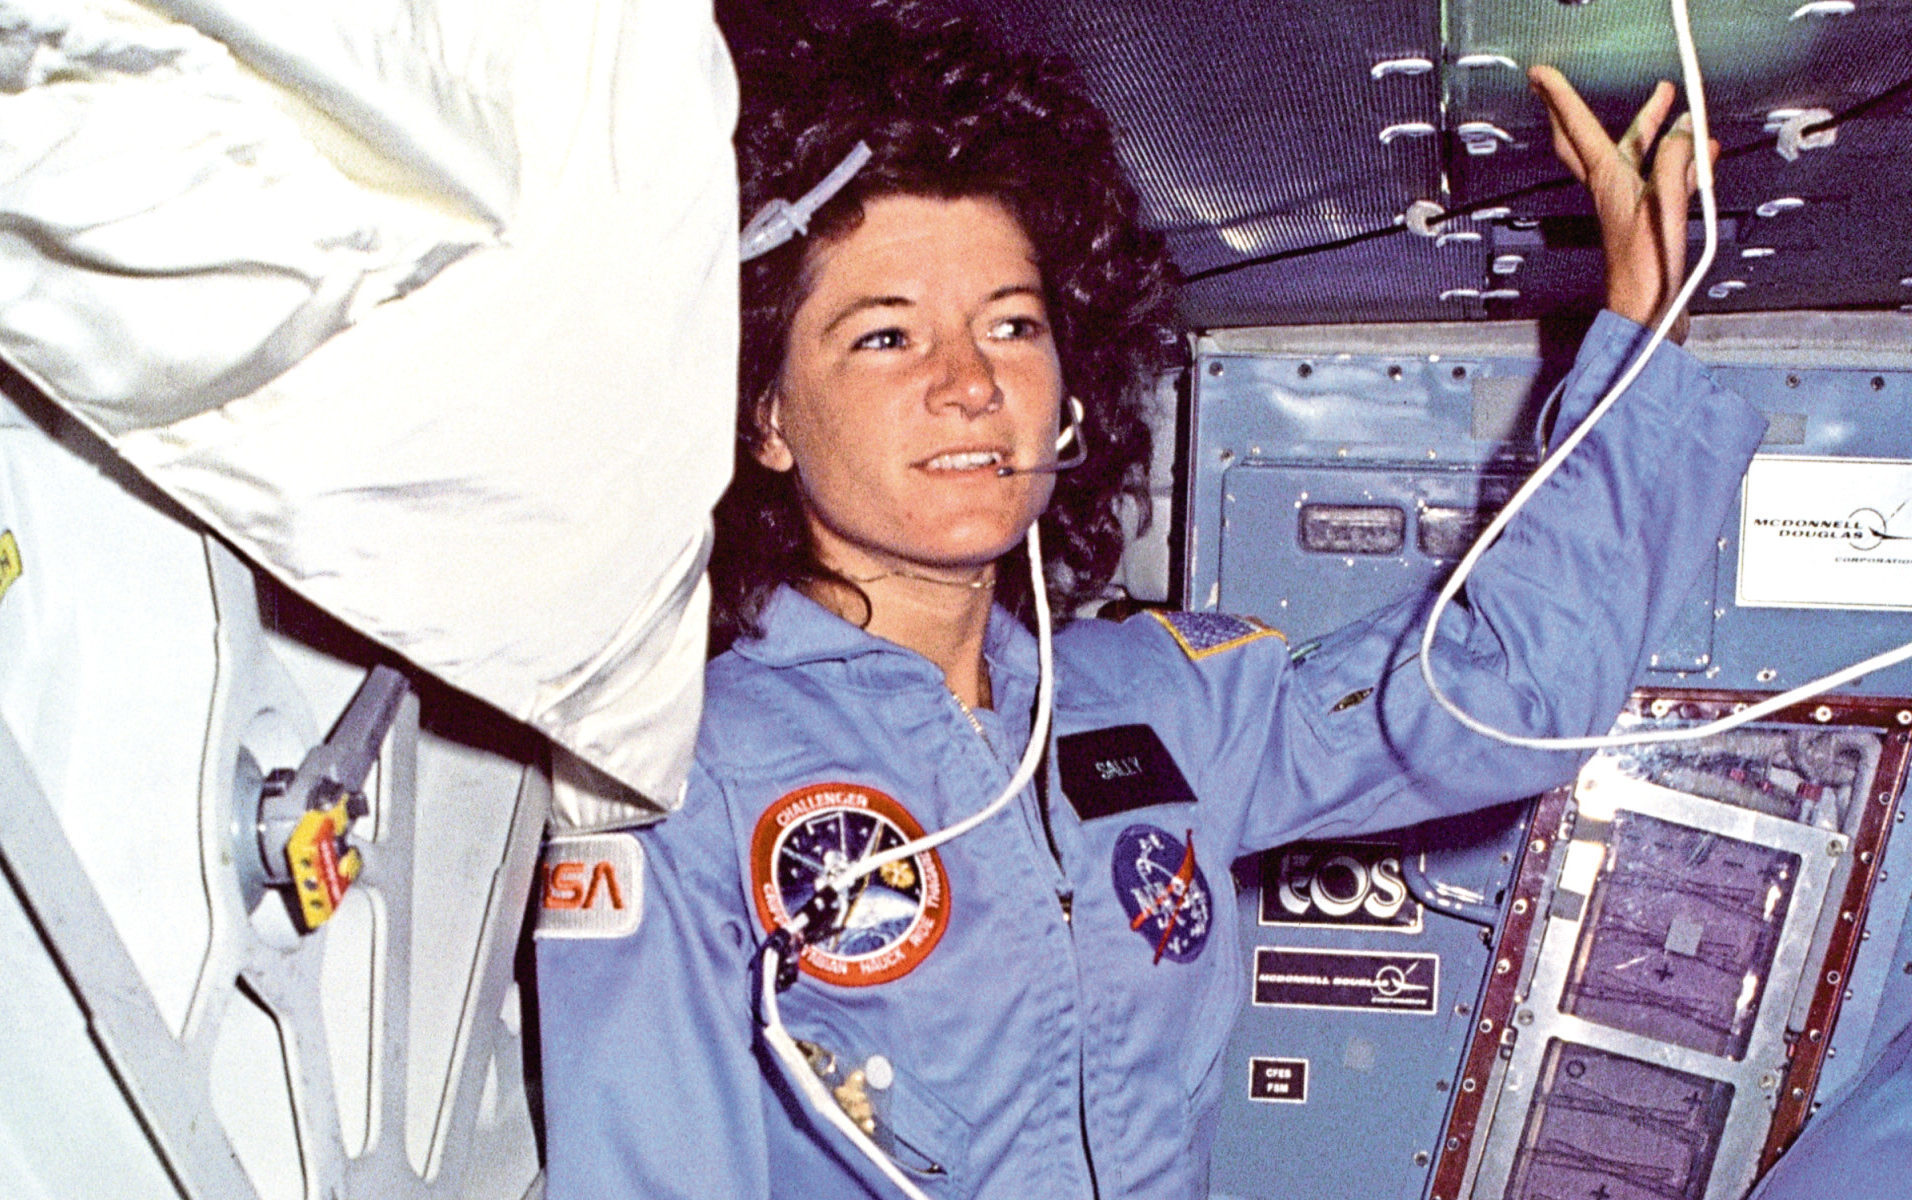 Sally Ride became the stuff of legend as USA's first female astronaut in space in 1983